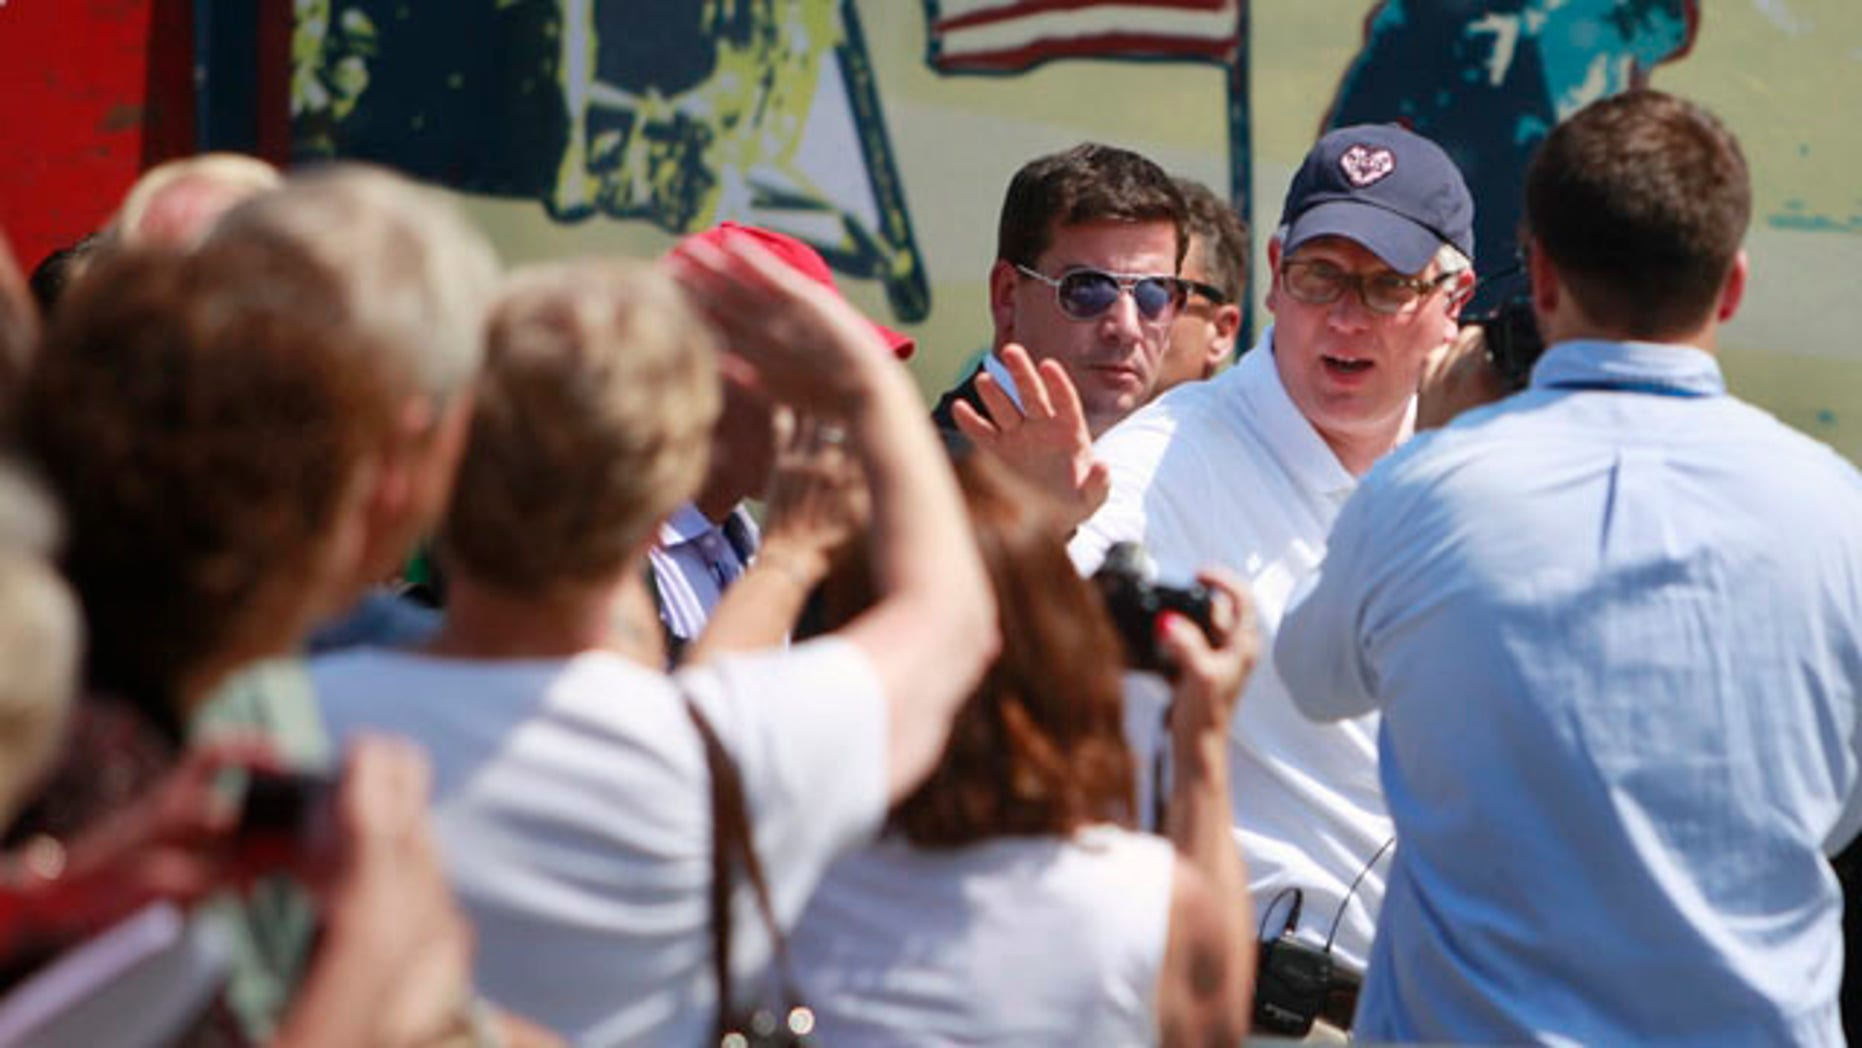 Glenn Beck, right, waves to supporters at the site of the Restoring Honor rally by the Lincoln Memorial in Washington, on Friday, Aug. 27, 2010. The rally will take place on Saturday (AP Photo/Jacquelyn Martin).